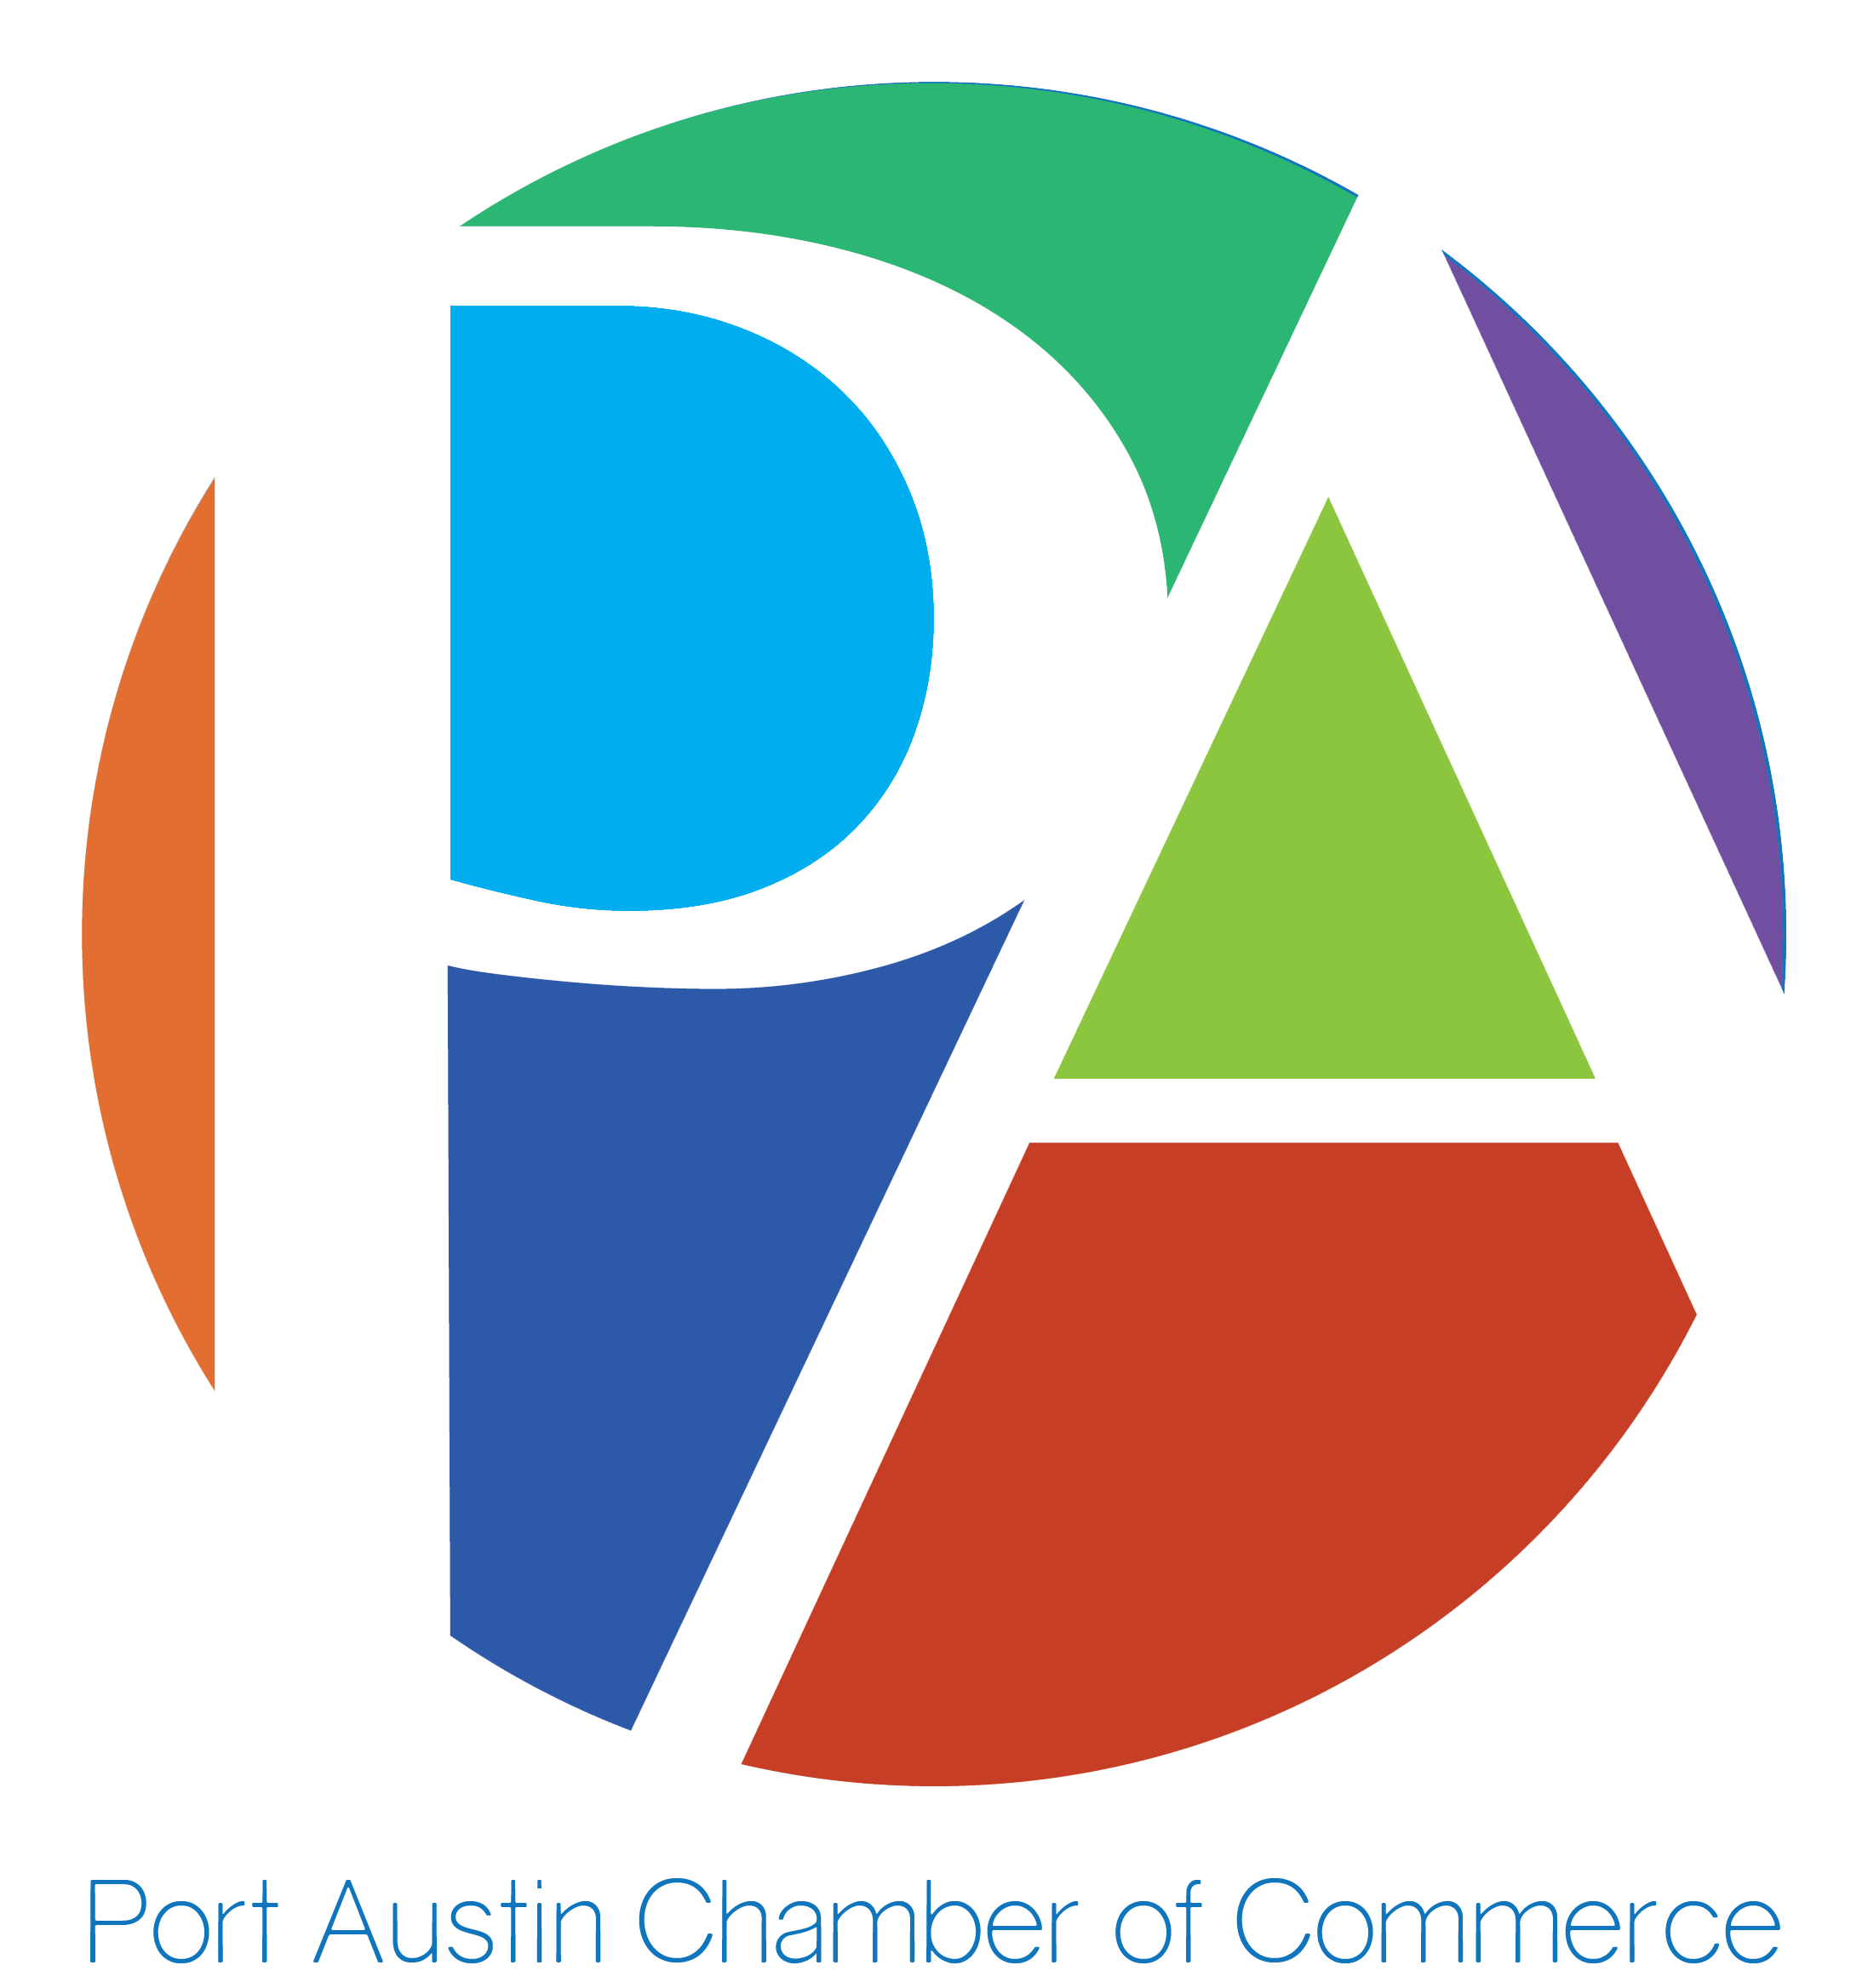 Greater Port Austin Area Chamber Of Commerce